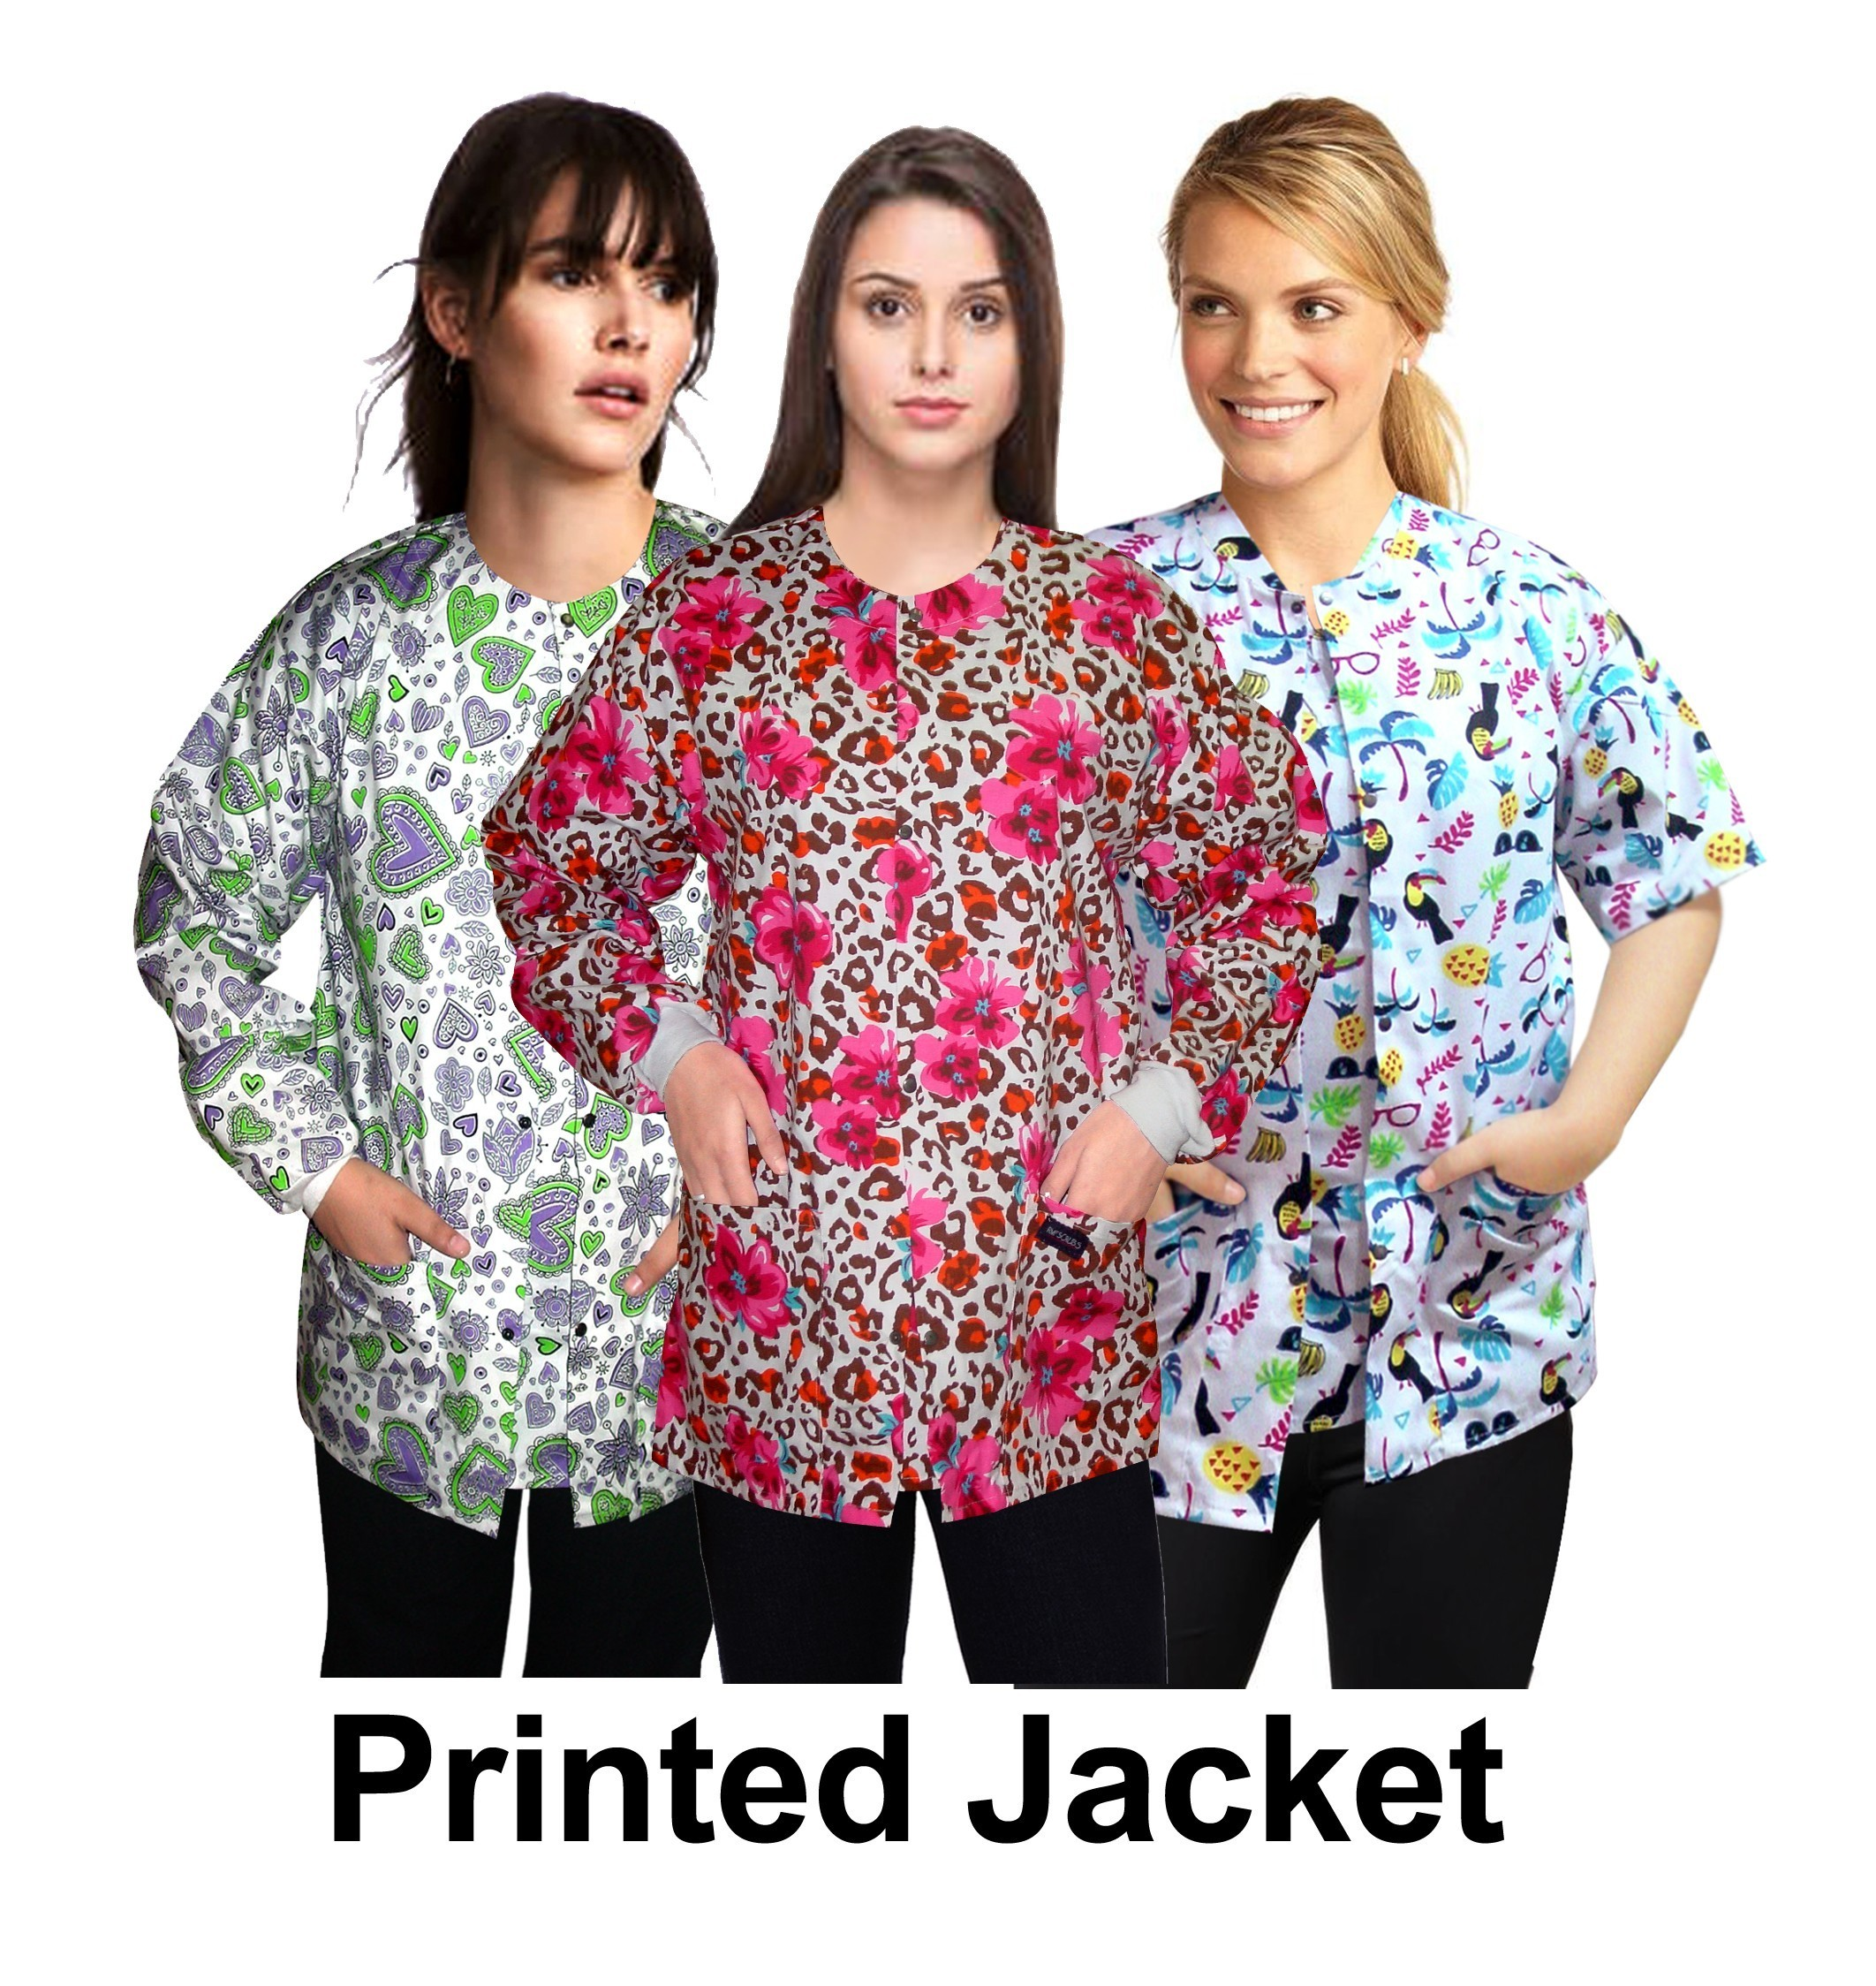 Clearance jacket 2 pocket printed unisex full or half sleeve any print any style